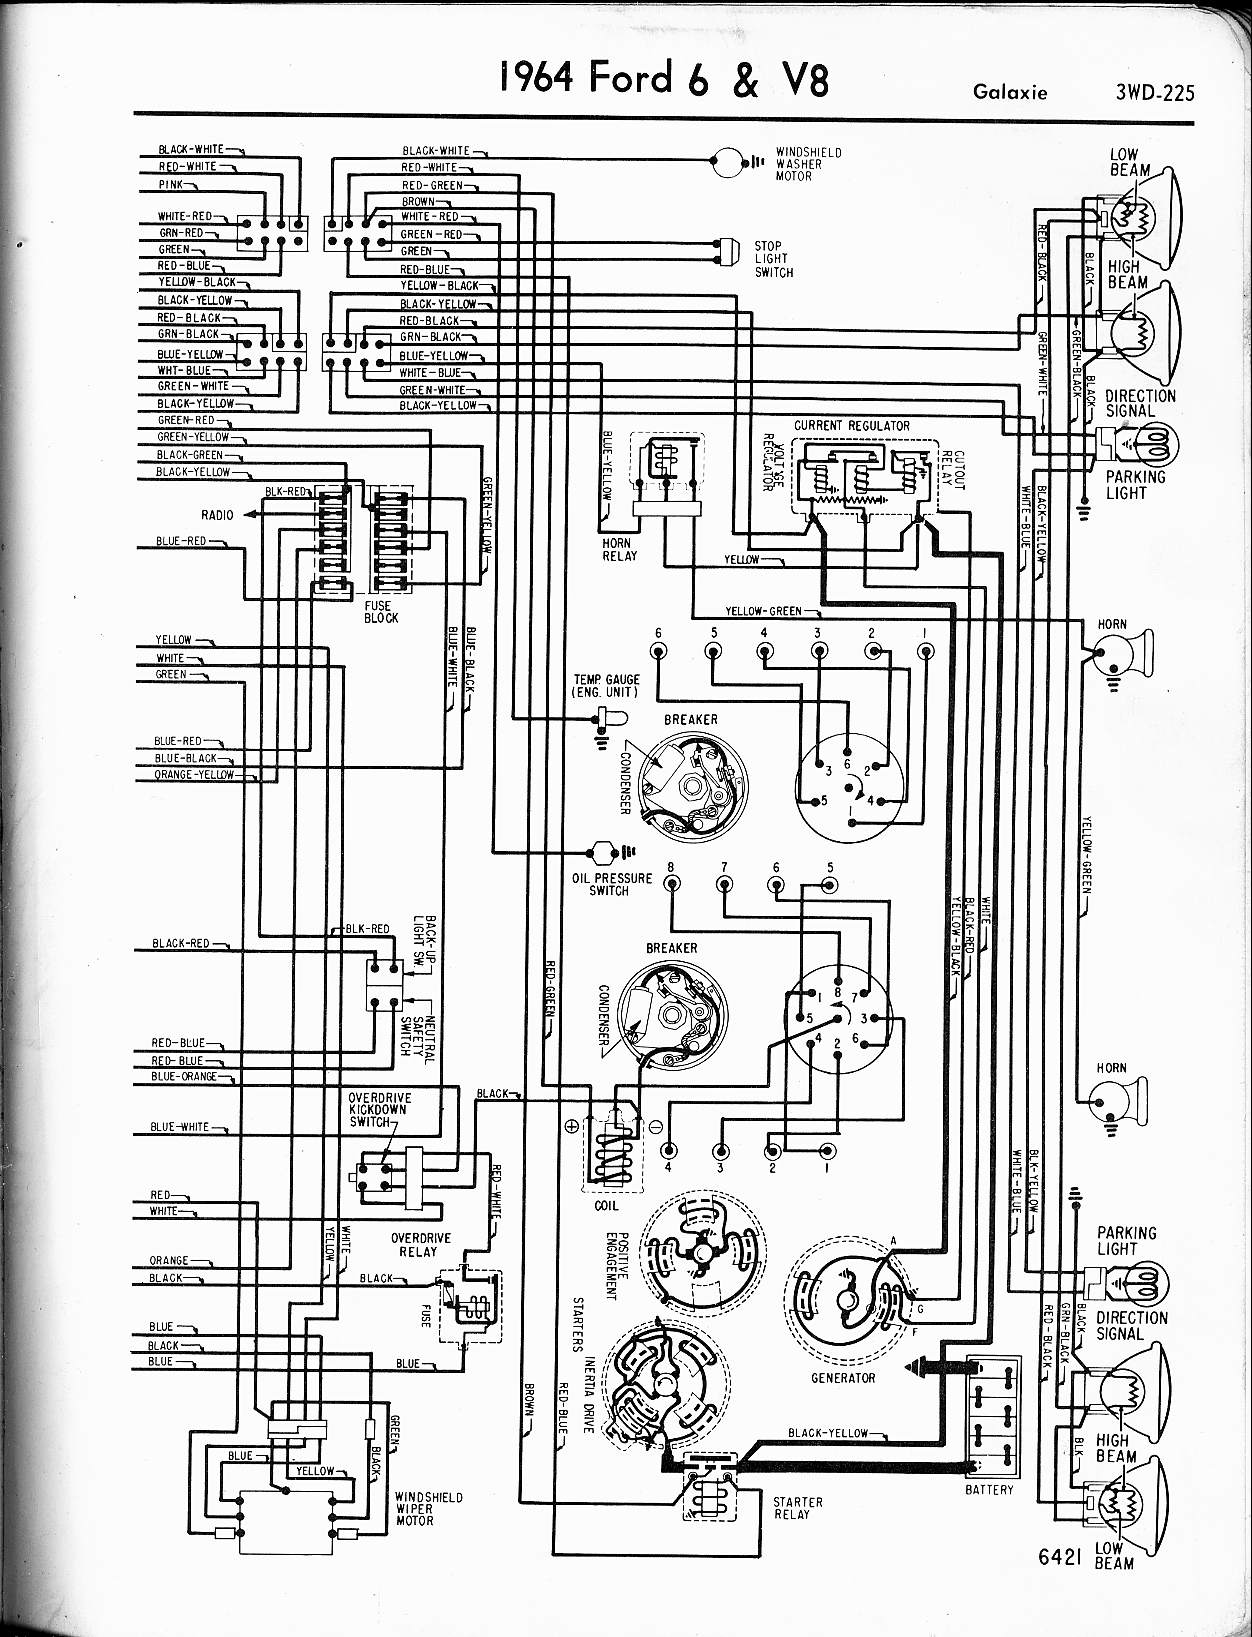 63 ford ranchero ignition diagram